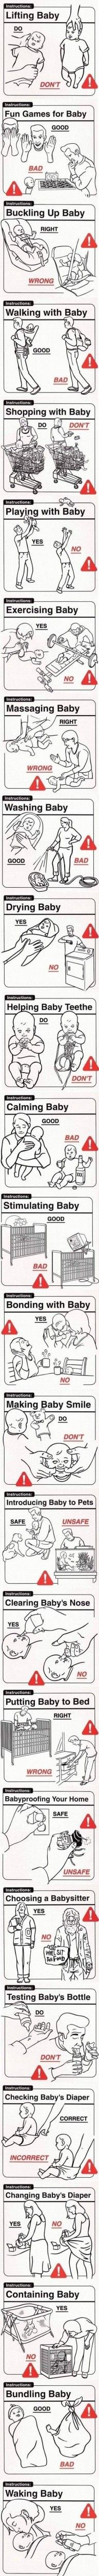 Do's & Don'ts for taking care of your baby (very useful!!!)